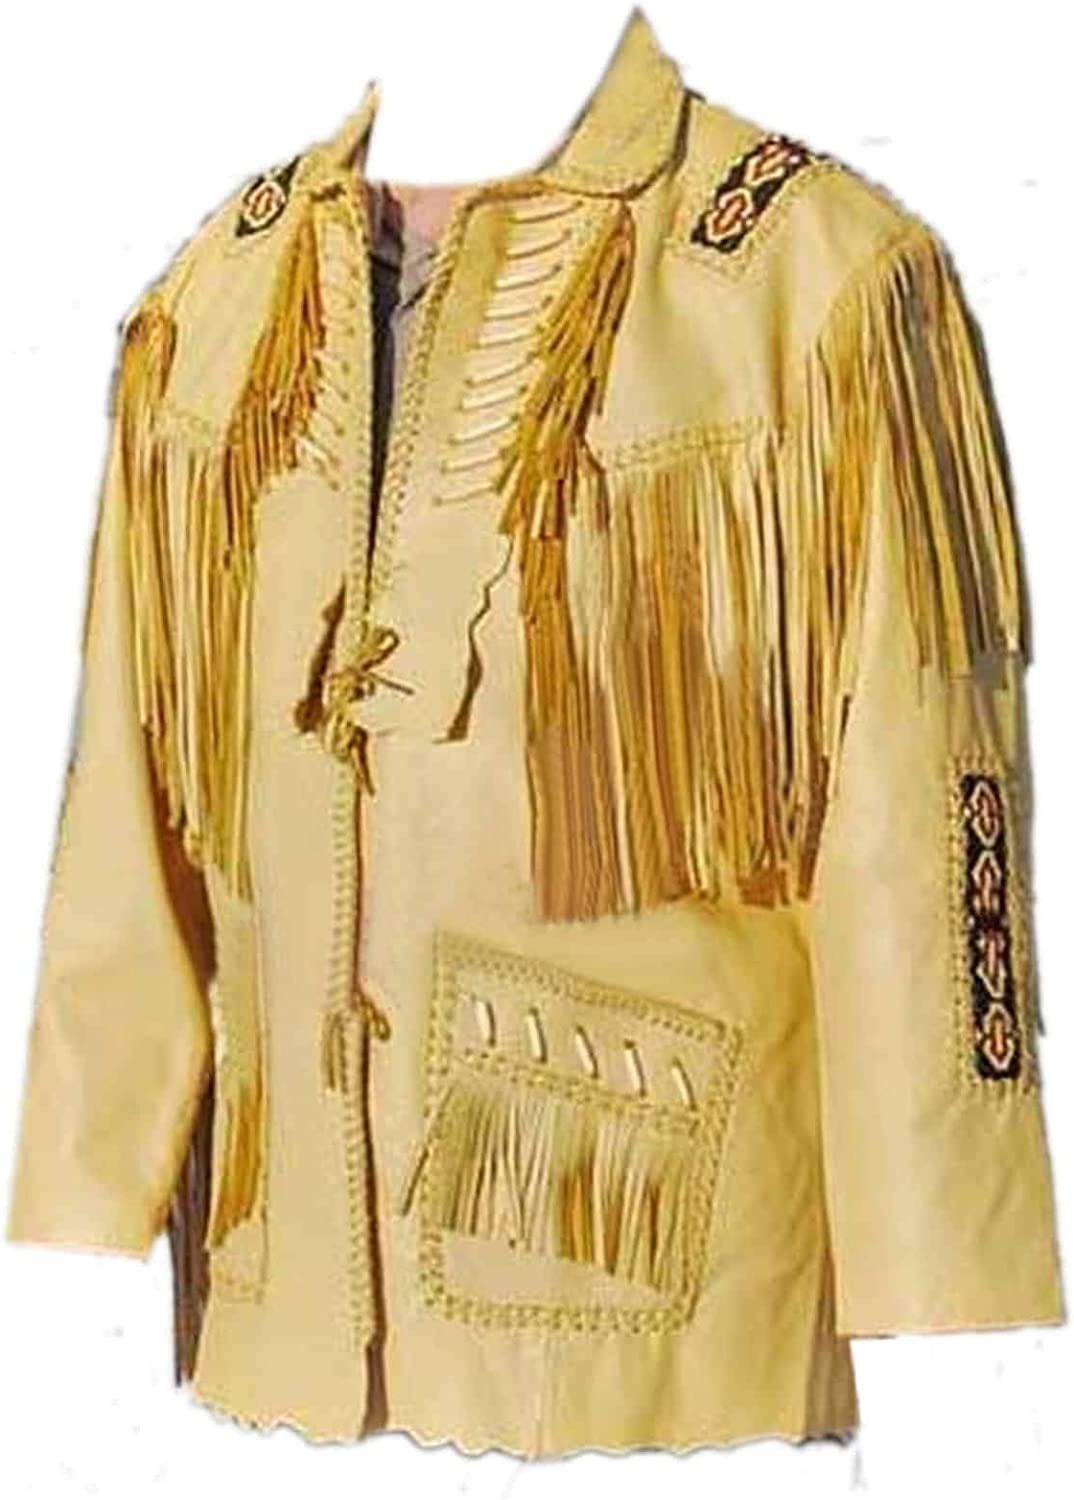 5XL Yellow LEATHERAY Mens Fashion Western Leather Jacket Suede Leather,XS